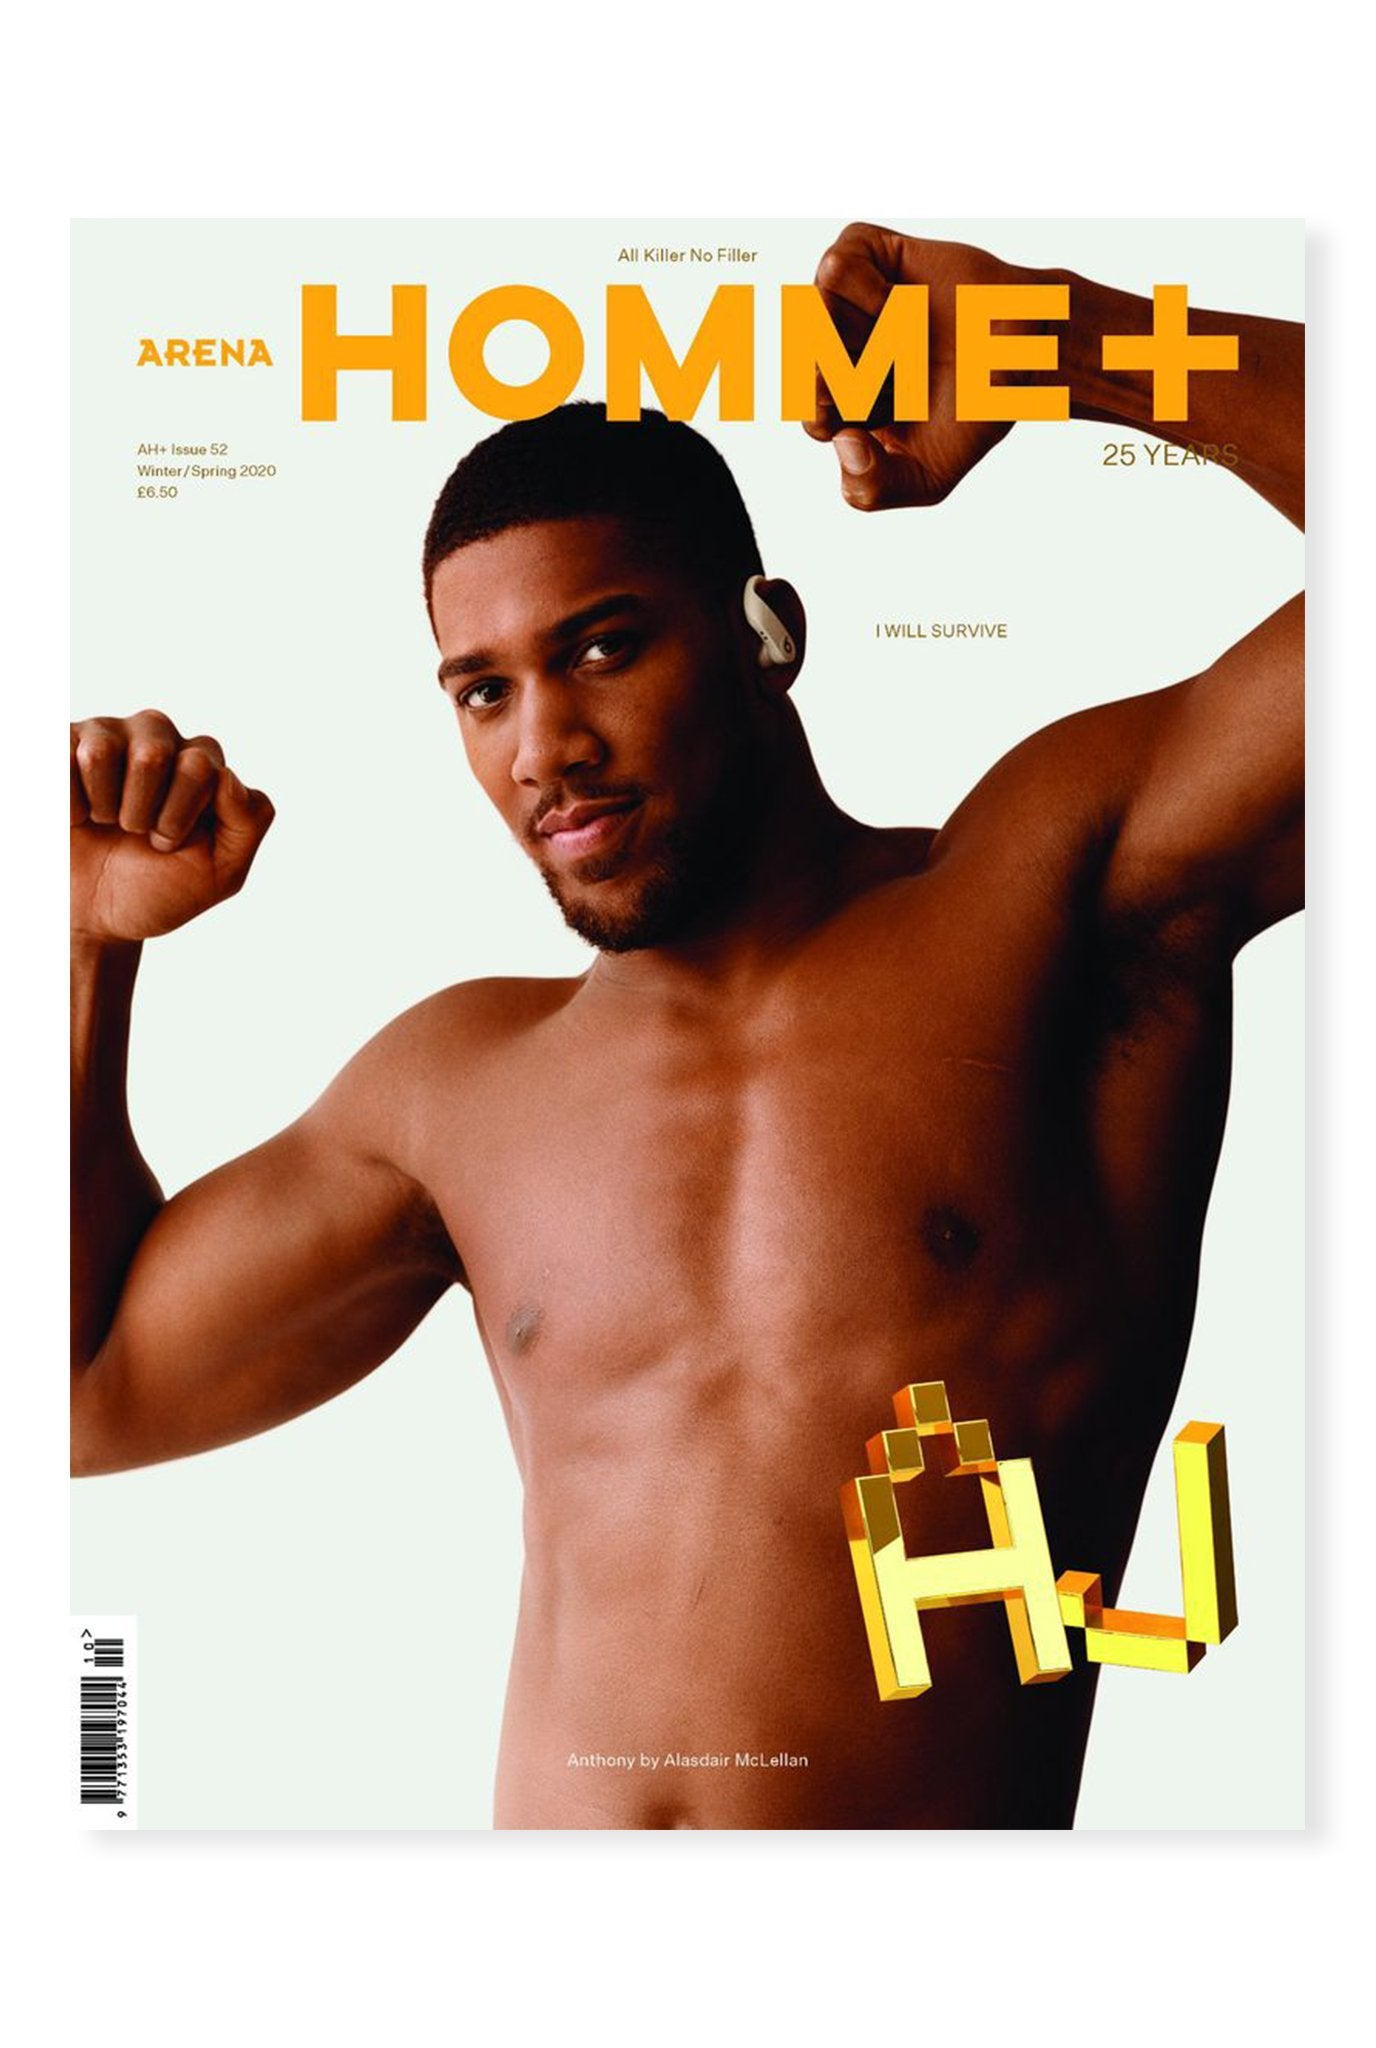 Arena Homme+ 52